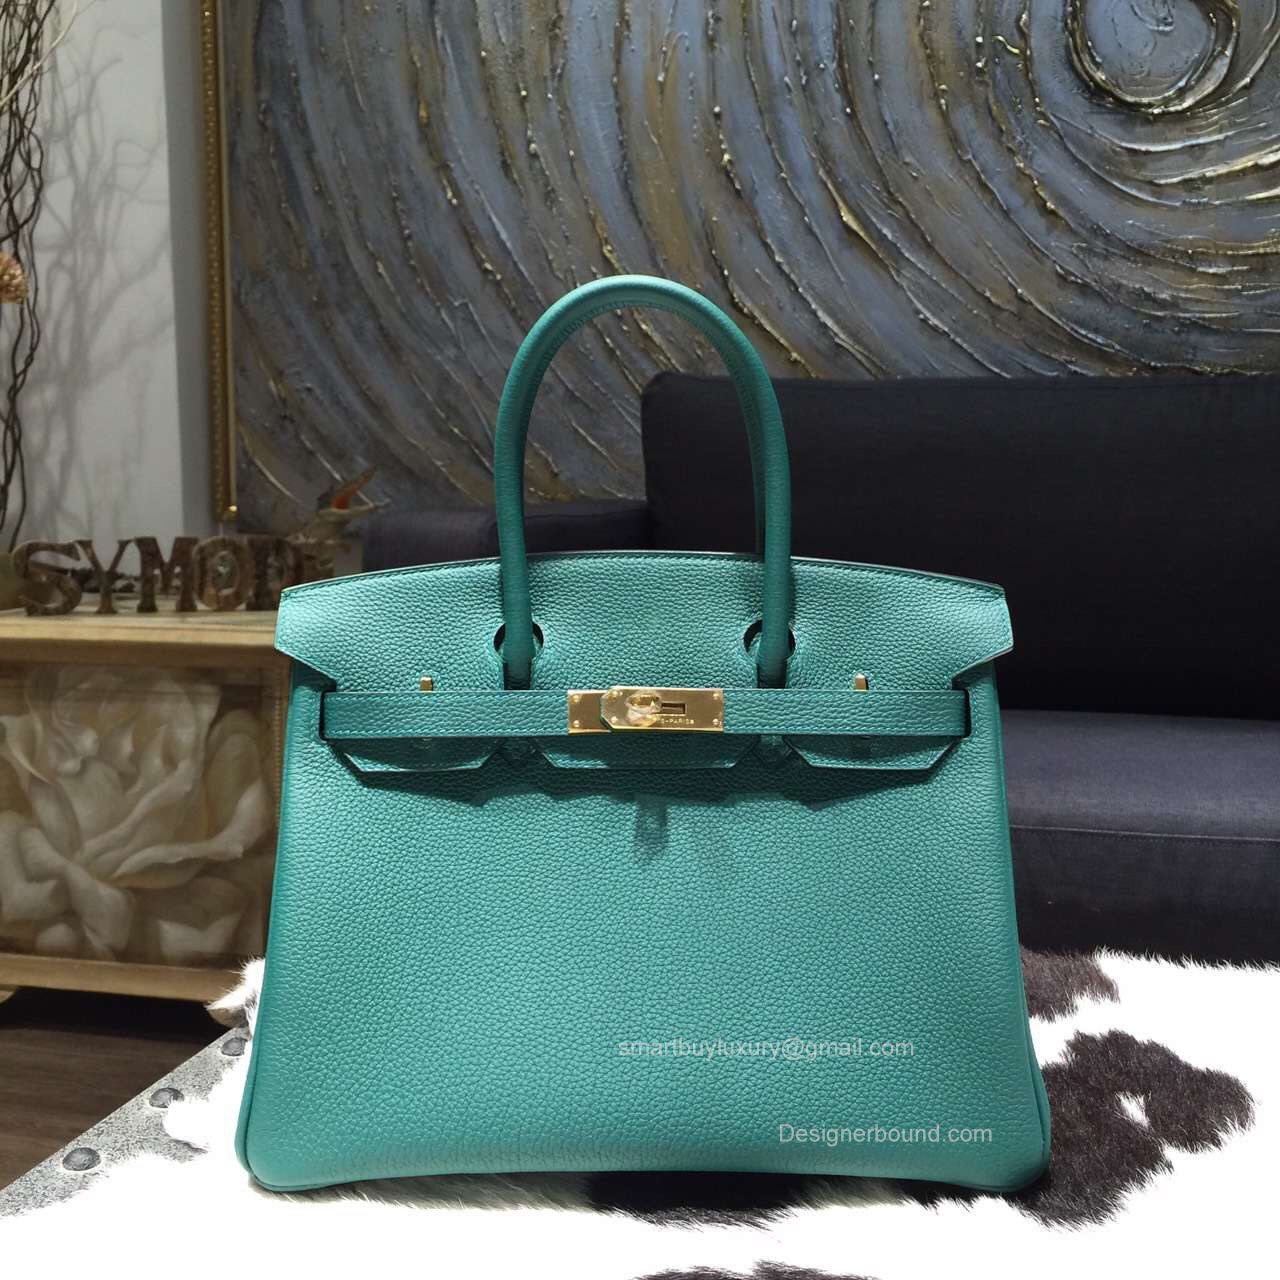 Hermes Birkin 35 Bag Malachite z6 Togo Leather Handstitched Gold hw